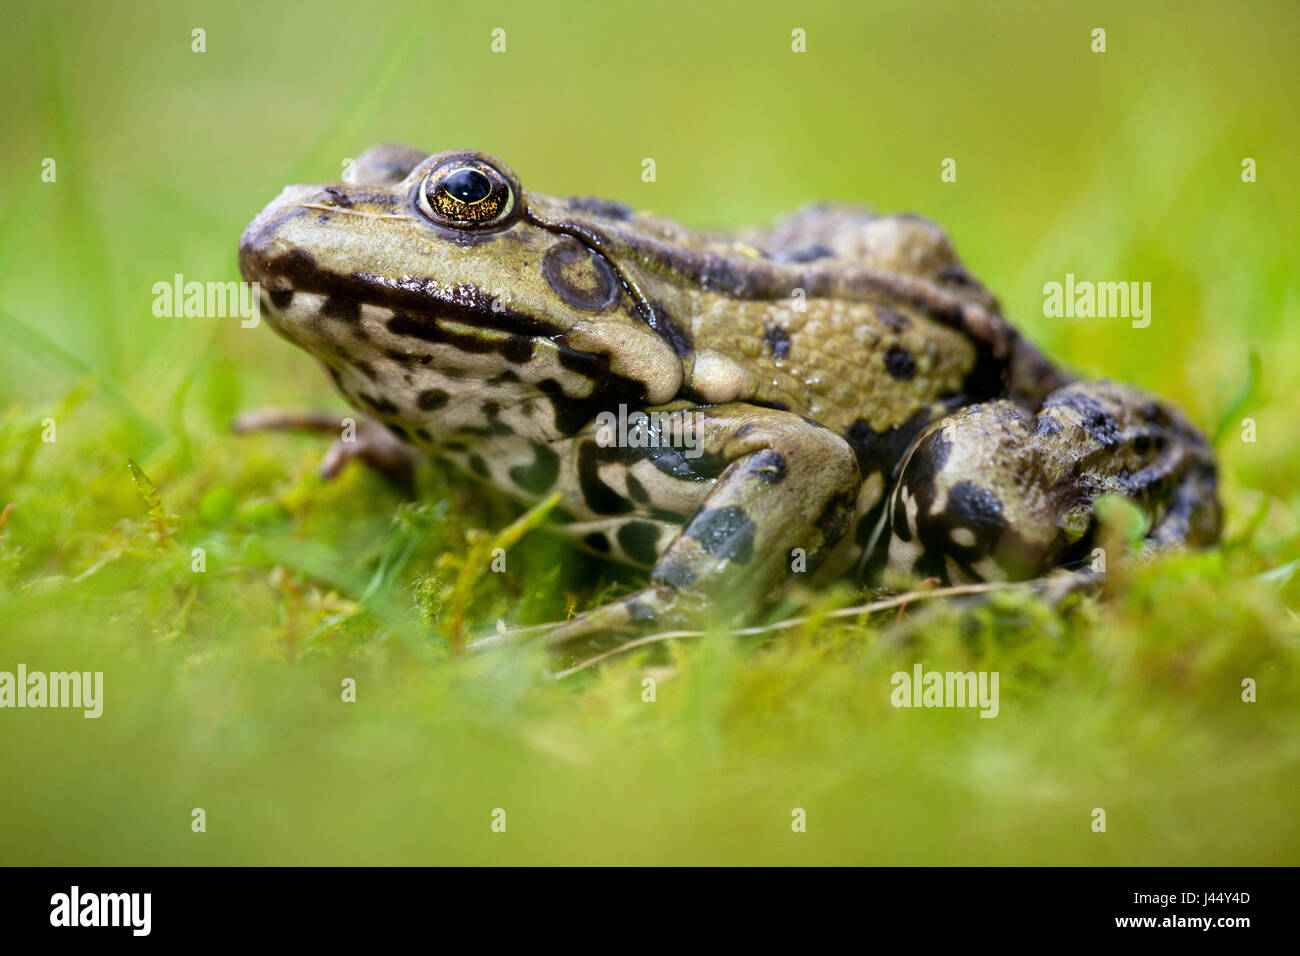 photo of a marsh frog in green grass against a green background - Stock Image